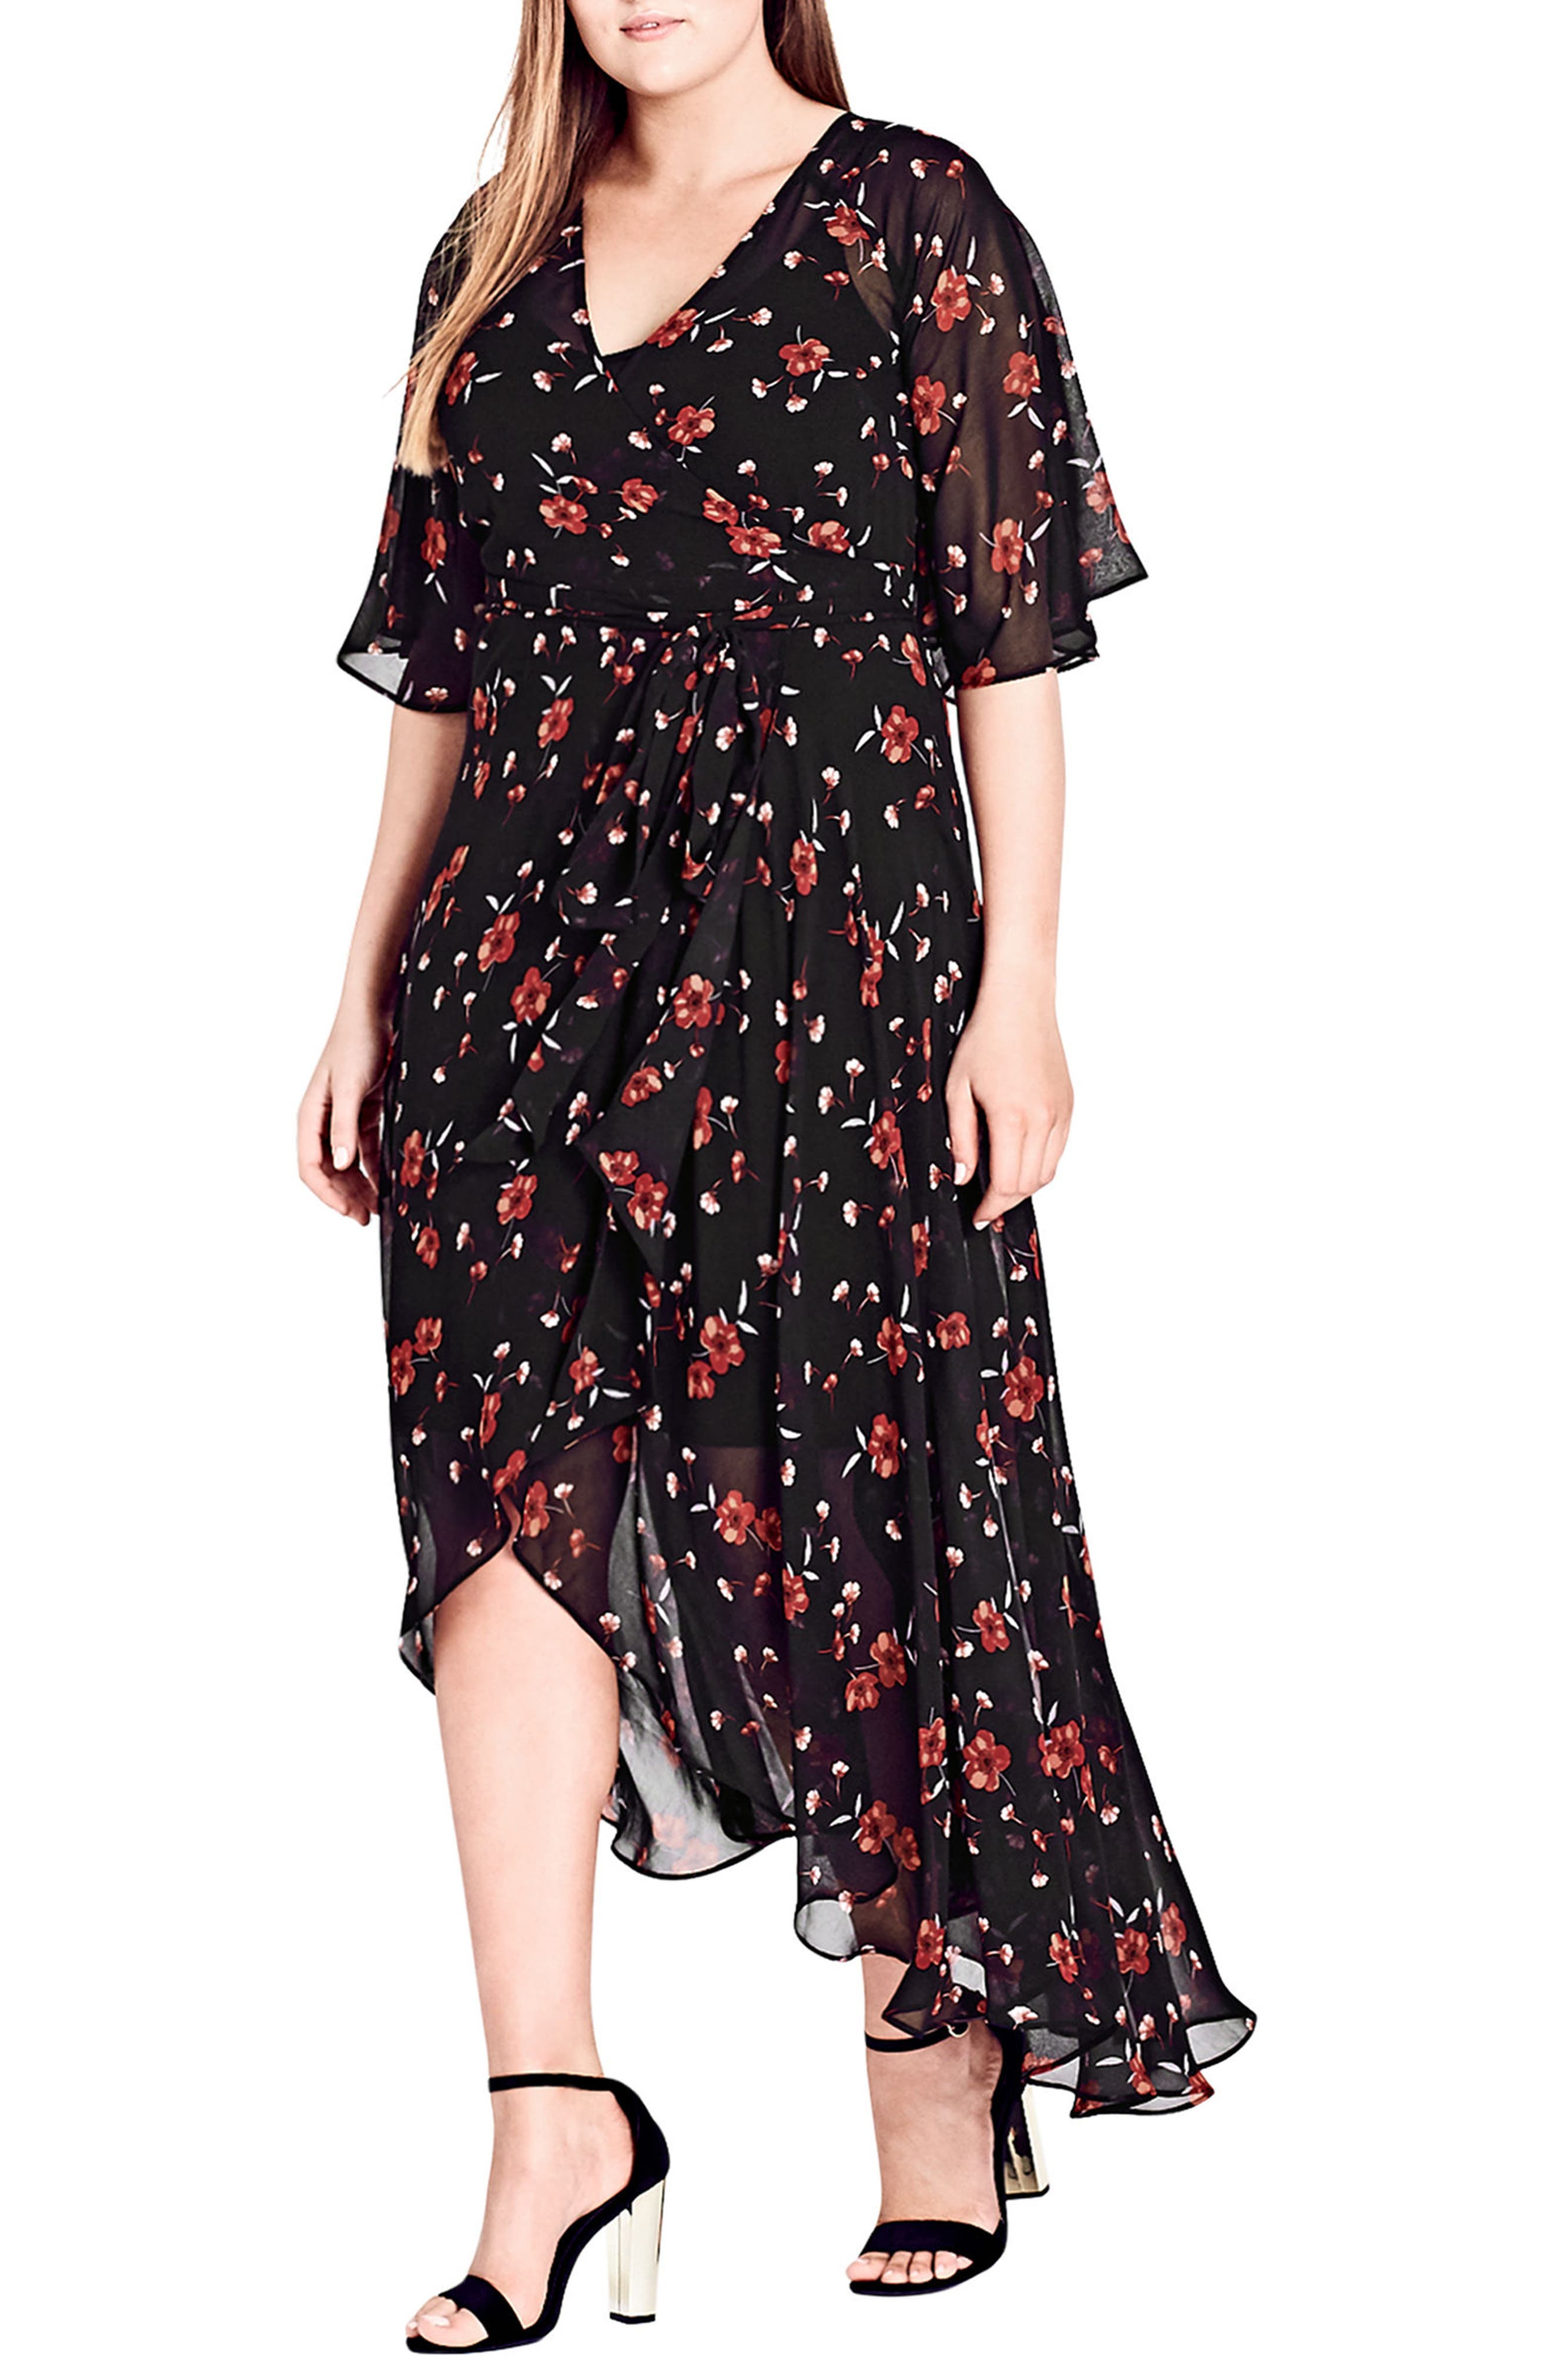 Fall in Love Floral Maxi Dress,                         Main,                         color, Black